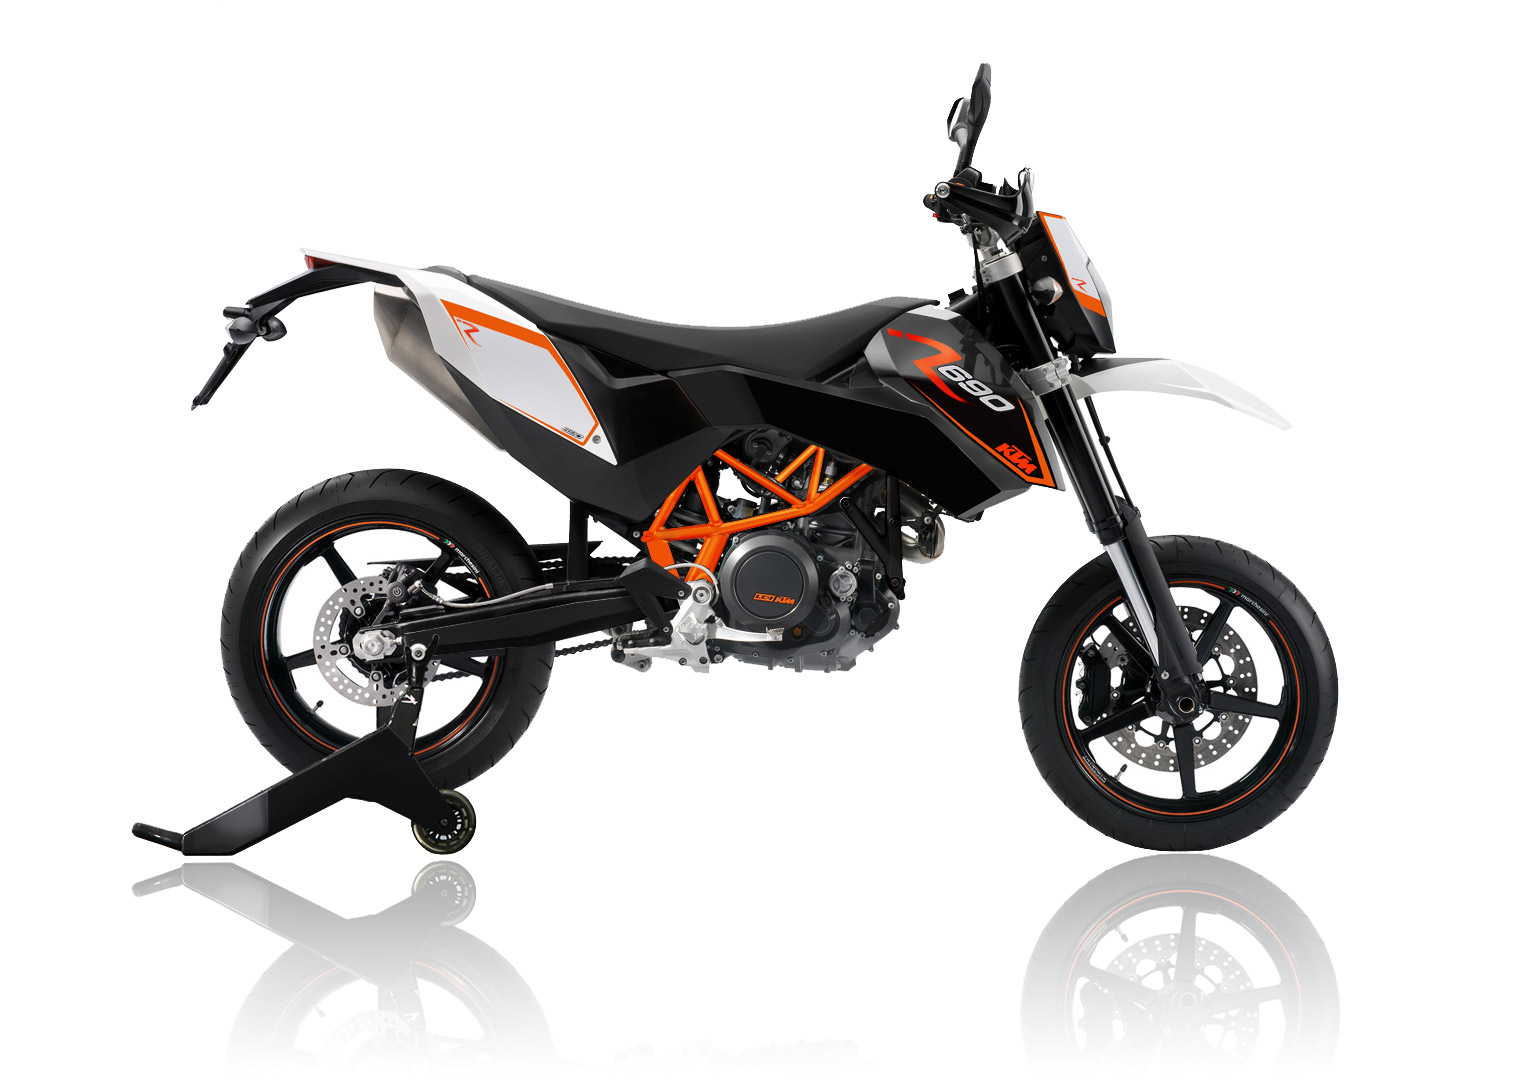 ktm 690 smc r by isaac chavira asphalt rubber. Black Bedroom Furniture Sets. Home Design Ideas